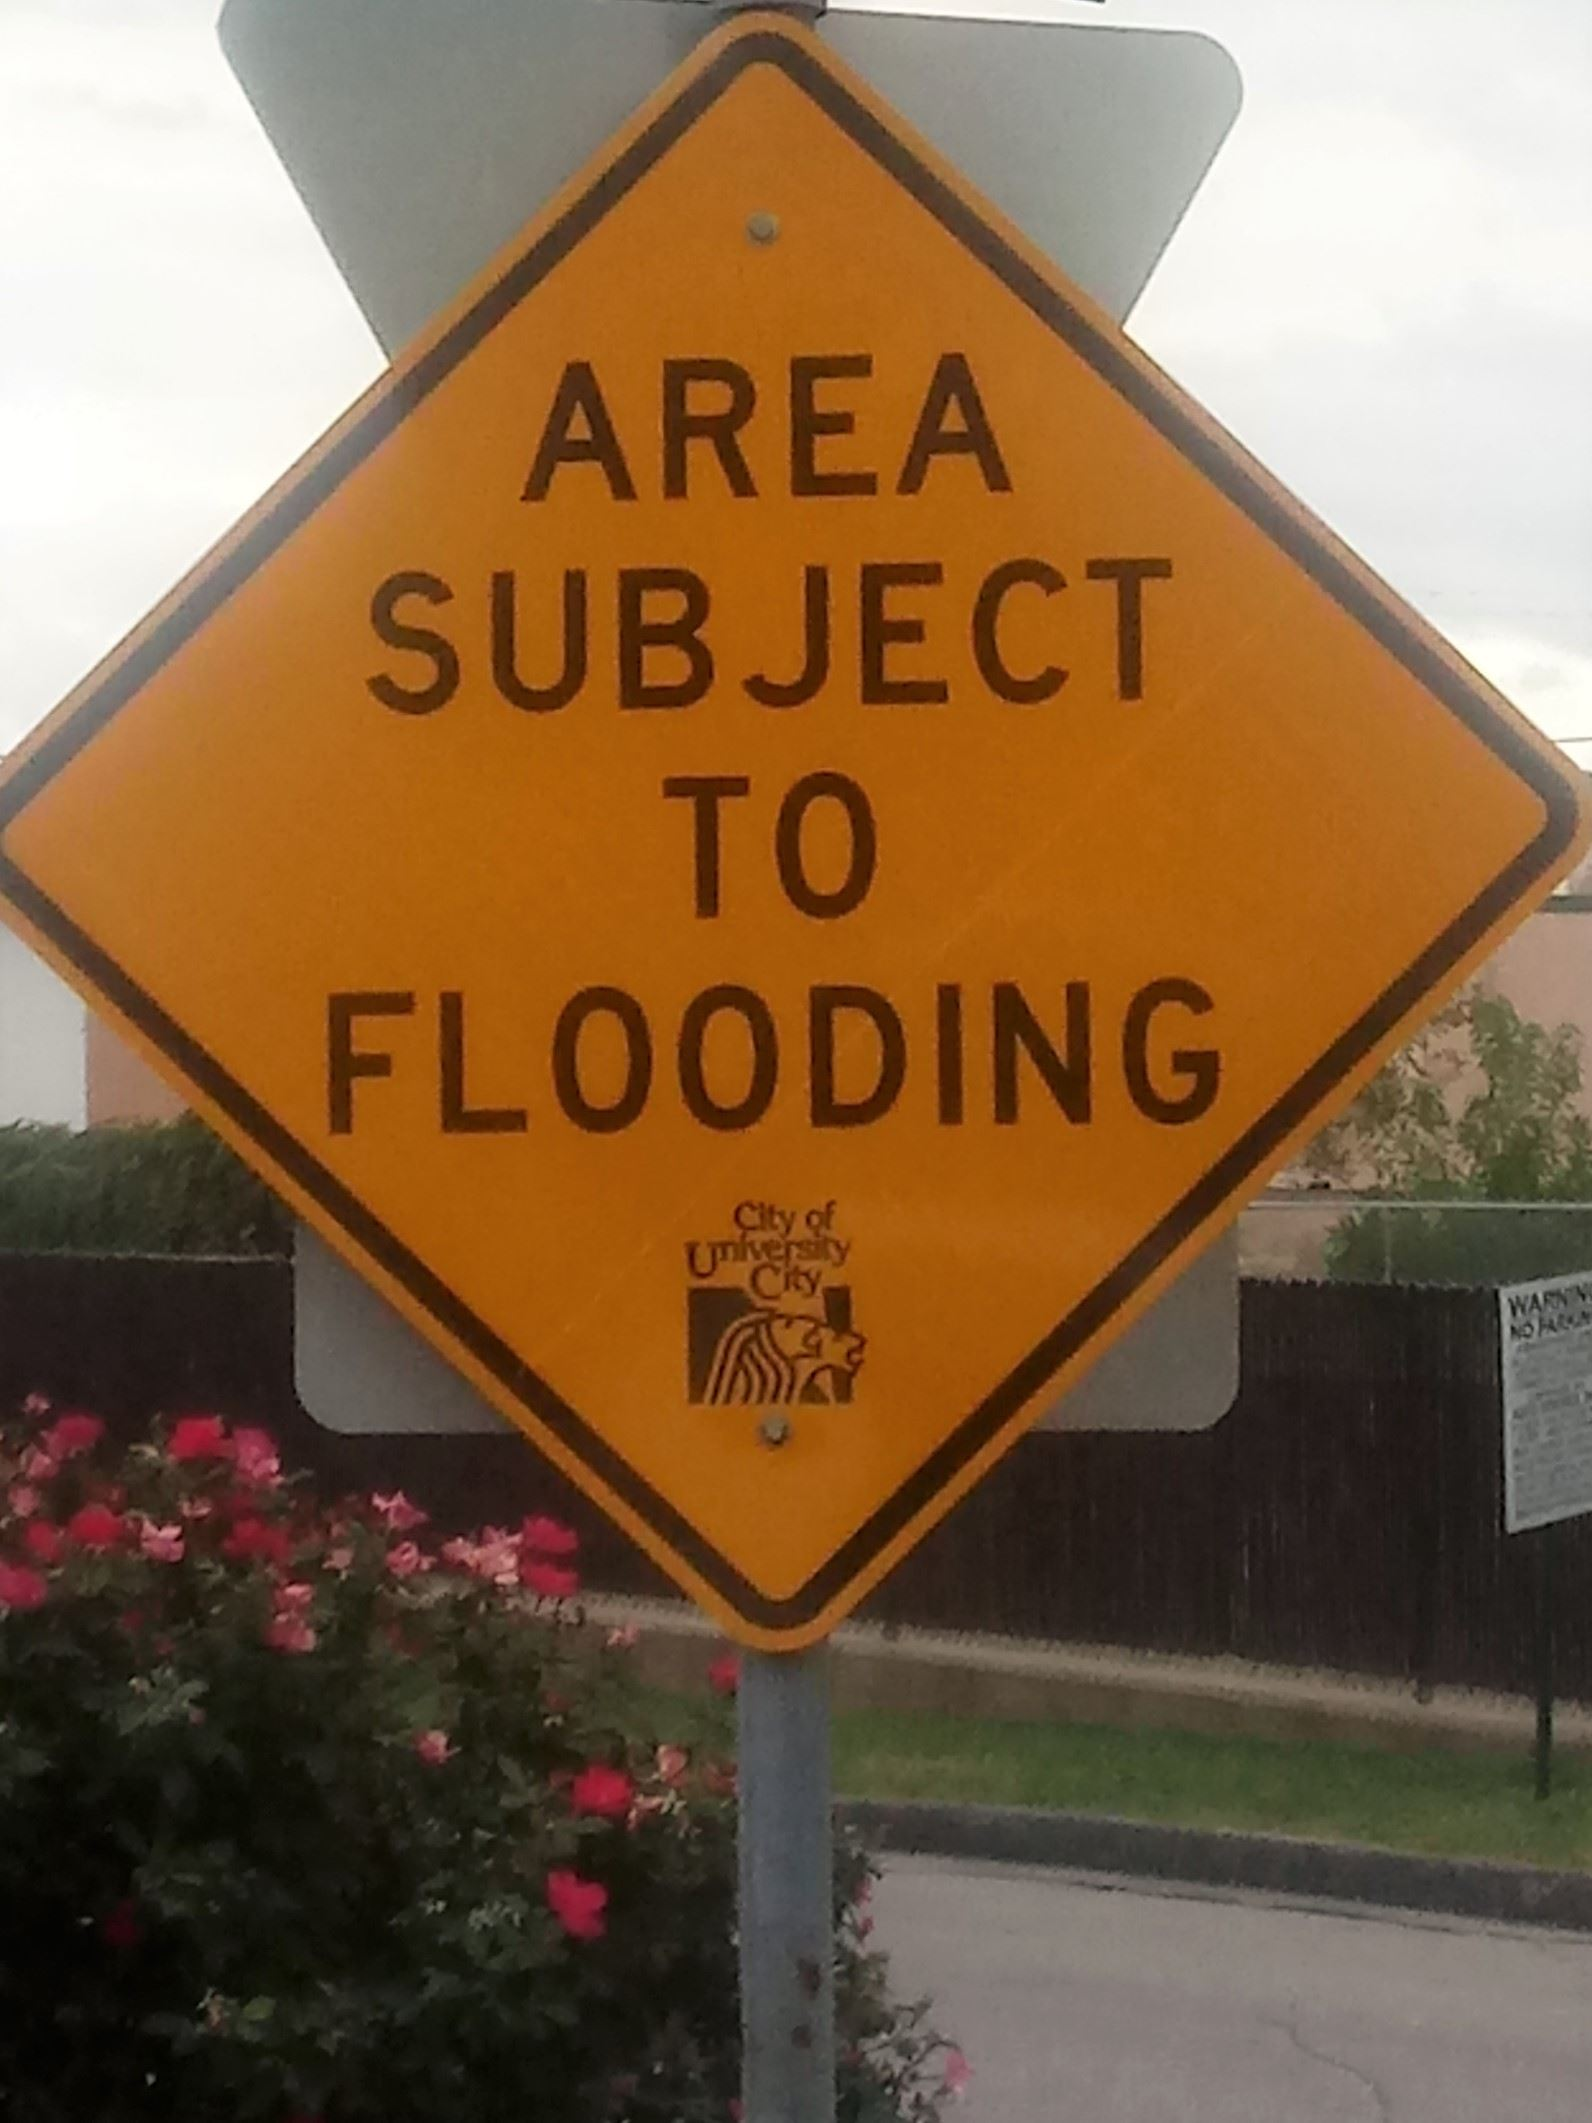 U City flood sign